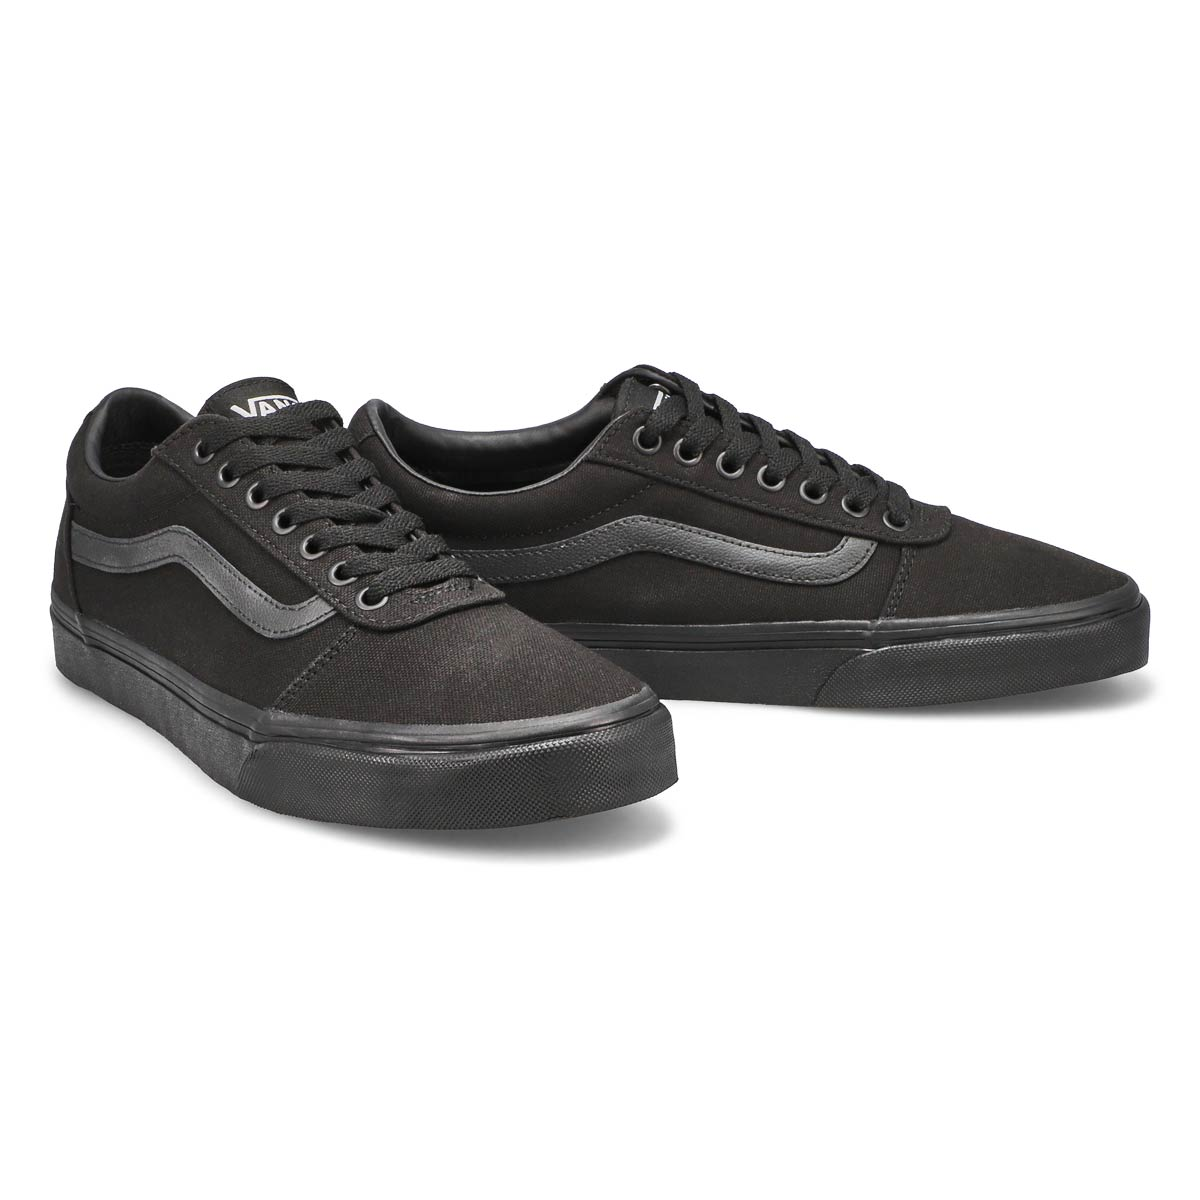 Mns Ward blk/blk lace up sneaker